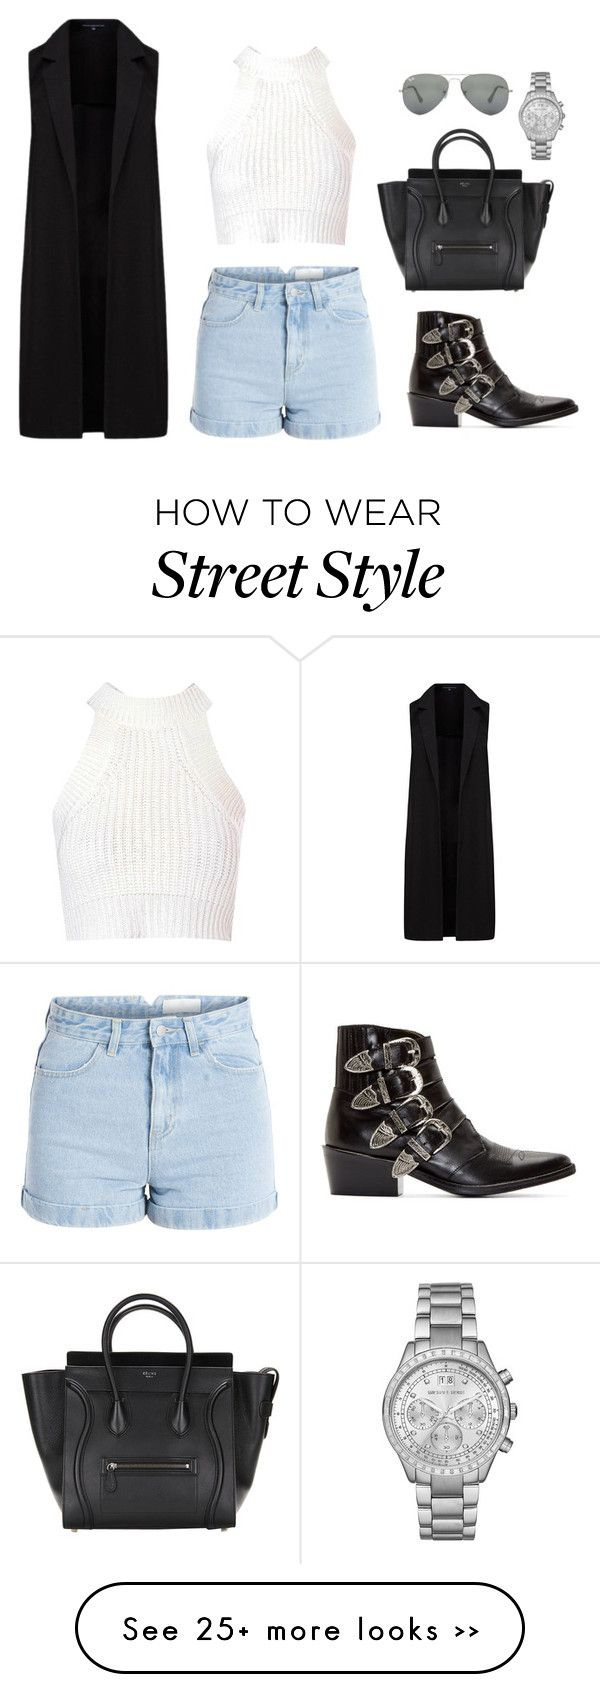 """""""Street Style"""" by teensallover on Polyvore featuring Toga, Glamorous, Pieces, French Connection, Ray-Ban, Michael Kors, StreetStyle, outfit and black"""